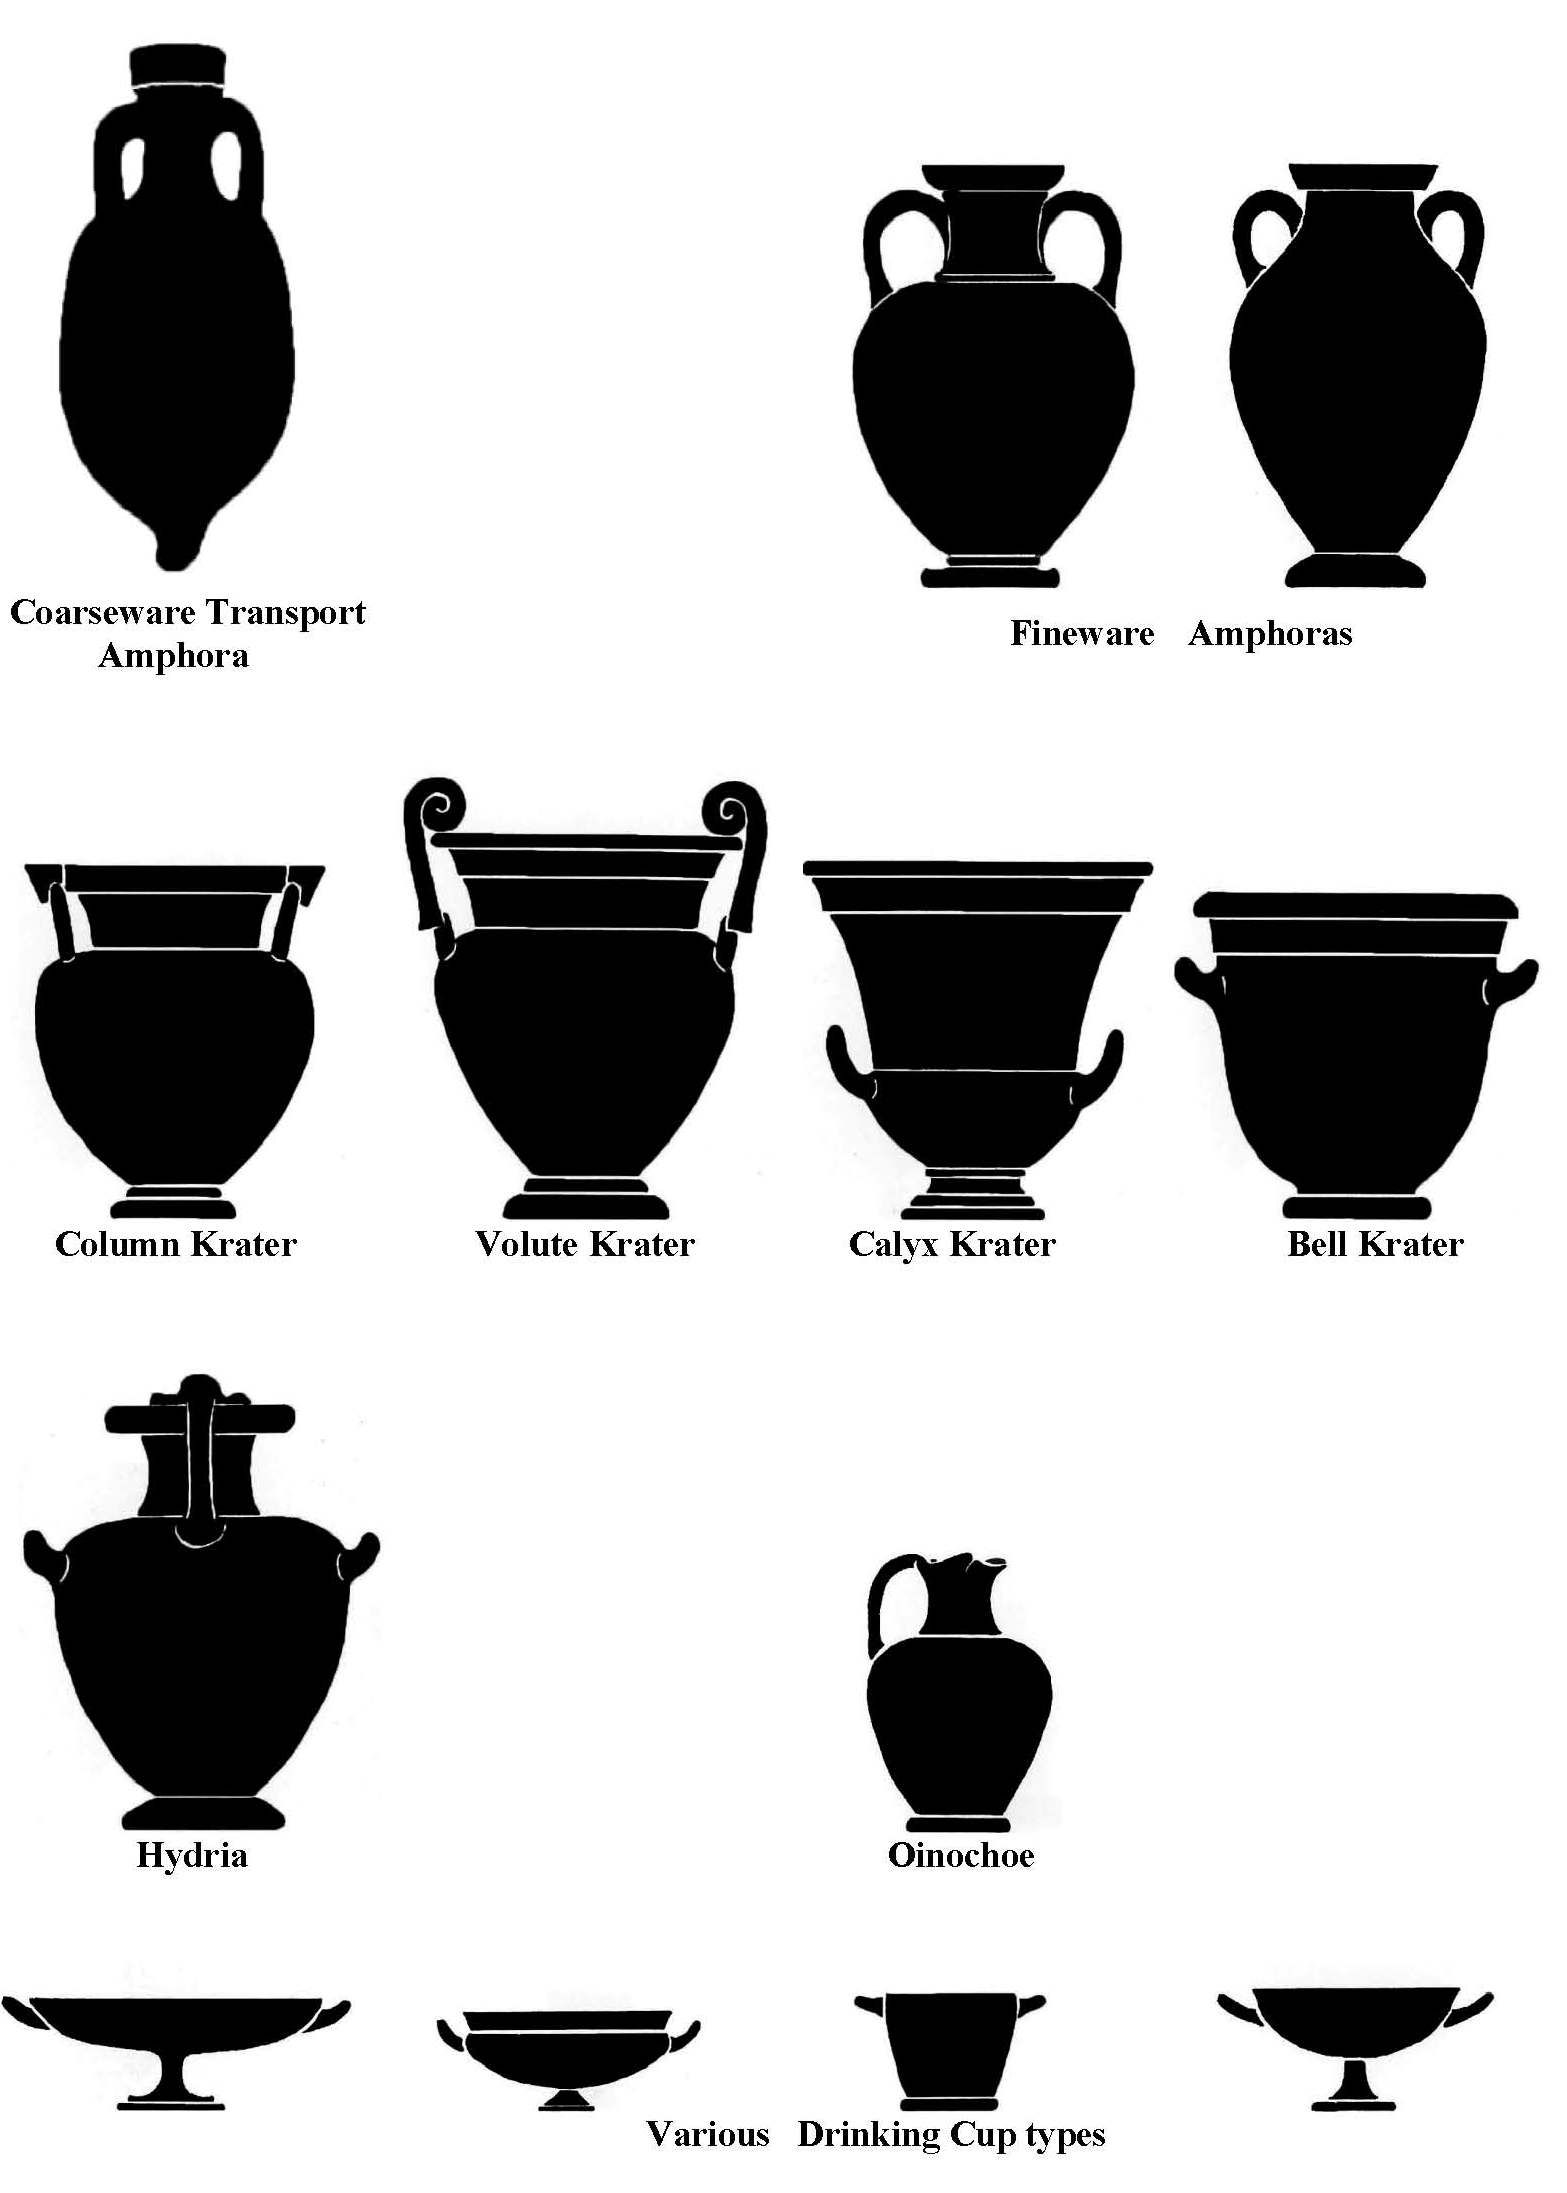 Some Of The Different Greek Pottery Shapes Used At The Symposium